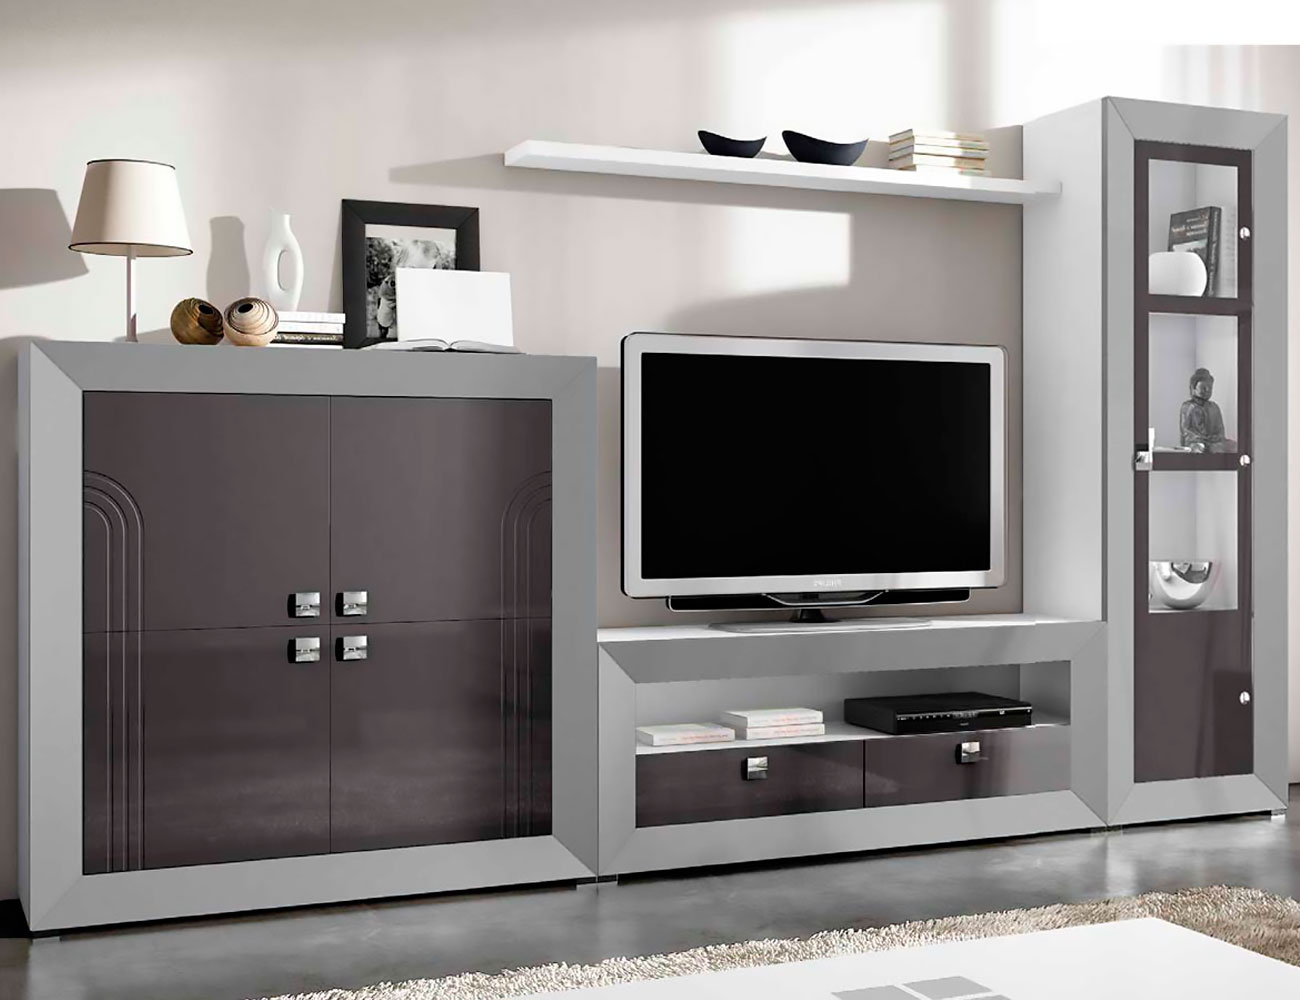 Mueble de sal n modular moderno lacado 2452 factory for Mueble modular salon